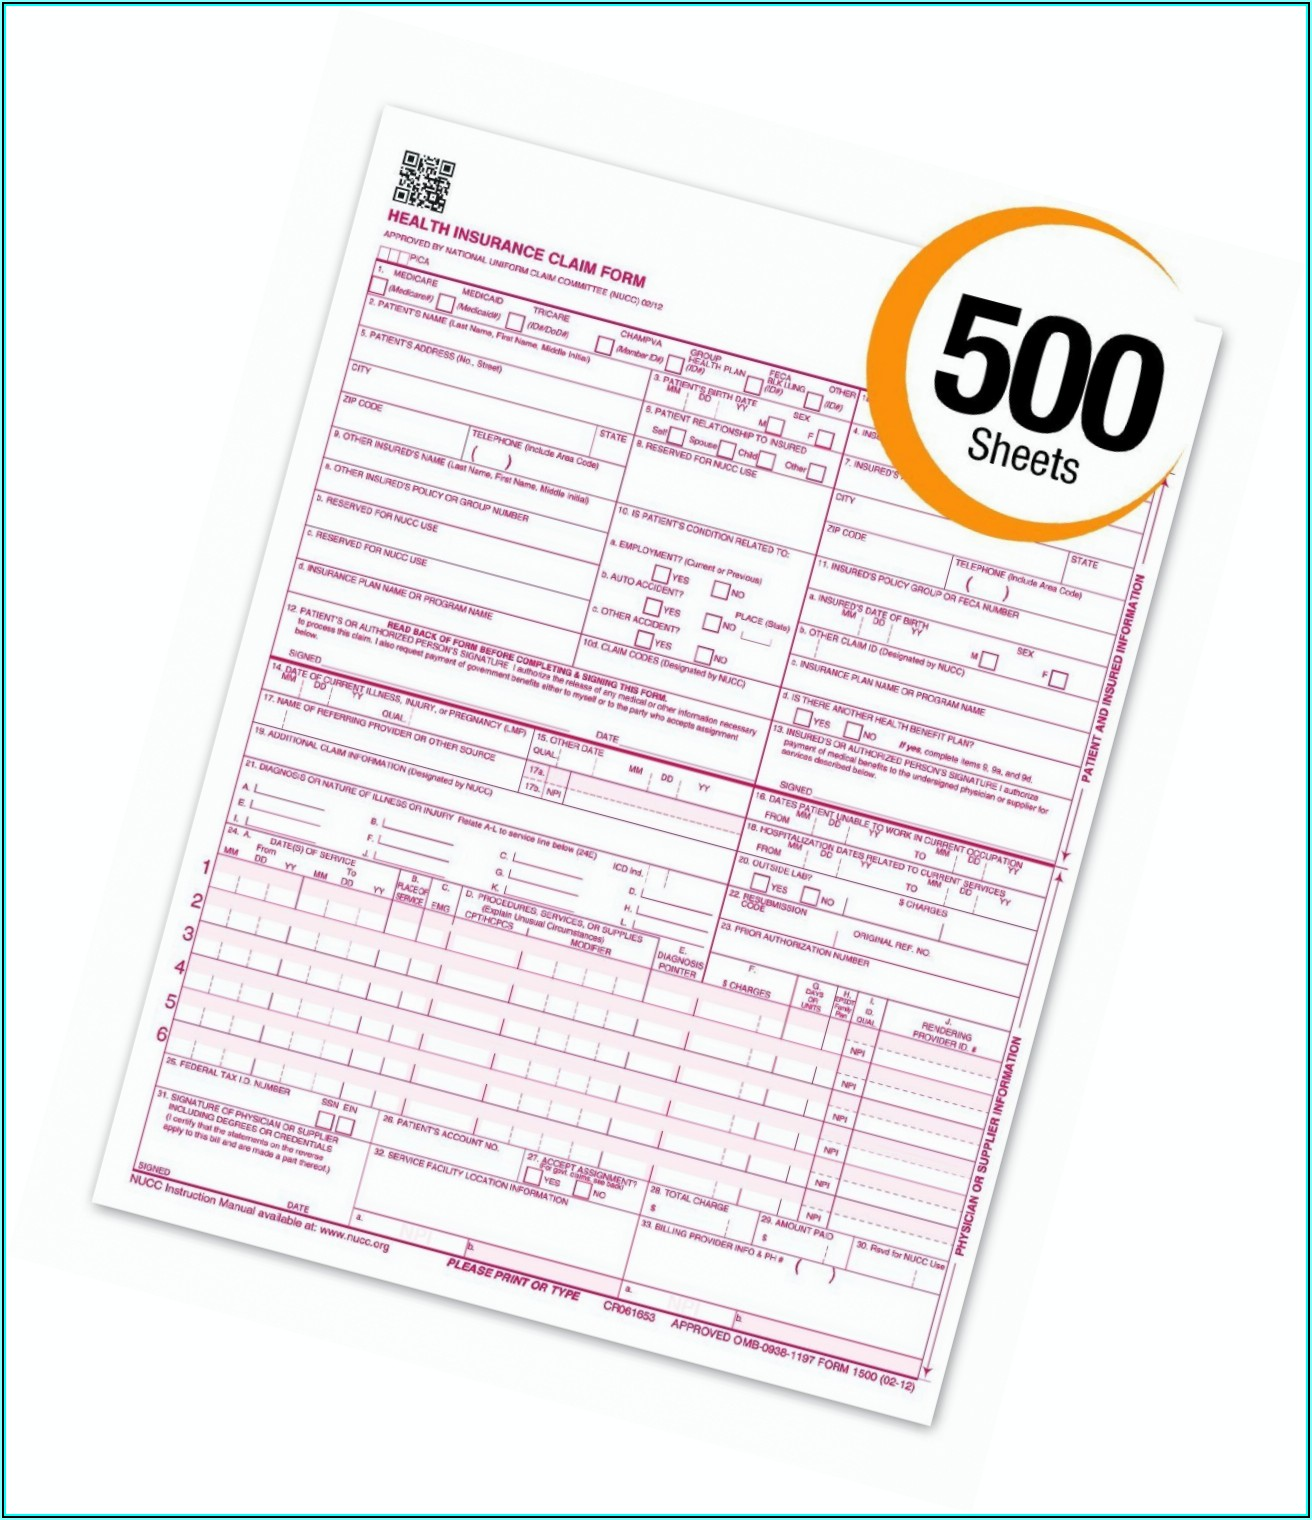 Sample Cms 1500 Form Pdf